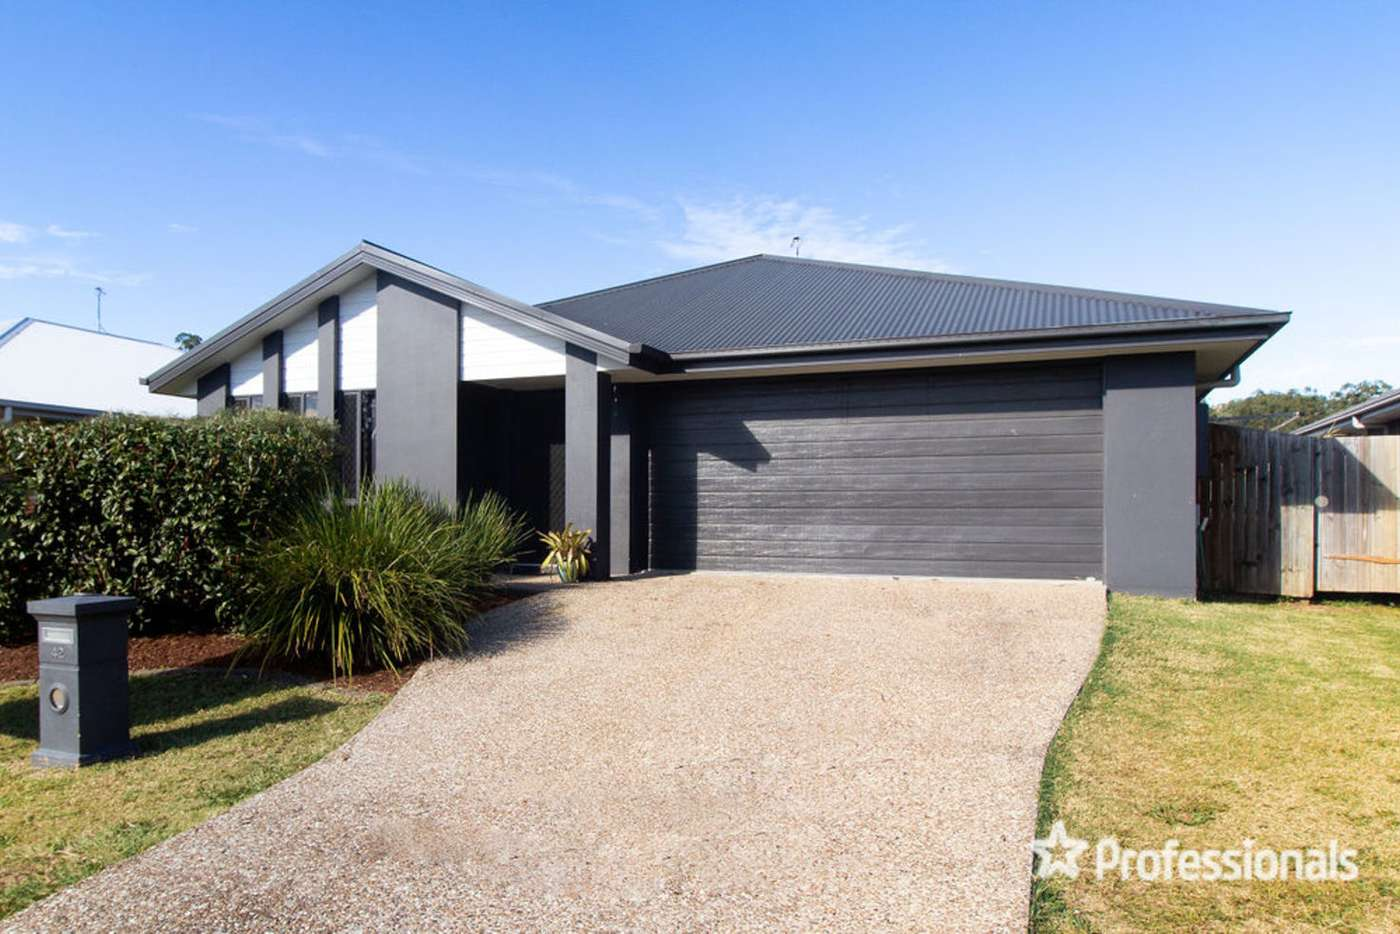 Main view of Homely house listing, 42 Emerson Road, Bannockburn QLD 4207